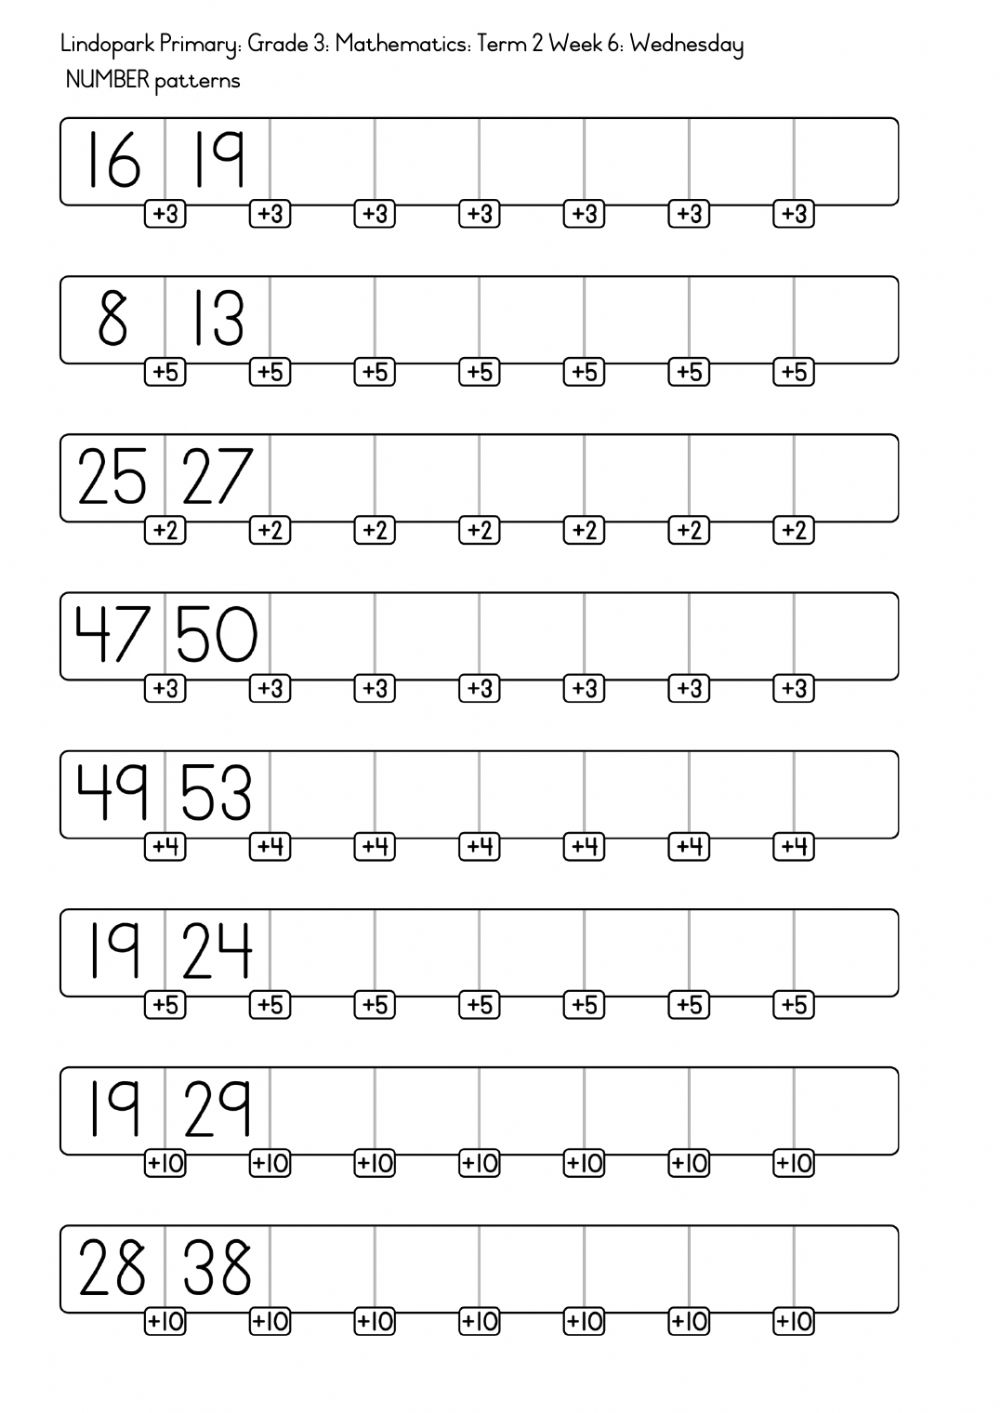 medium resolution of Grade 3 Mathematics: Term 2 Week 6: Number patterns: Wednesday worksheet